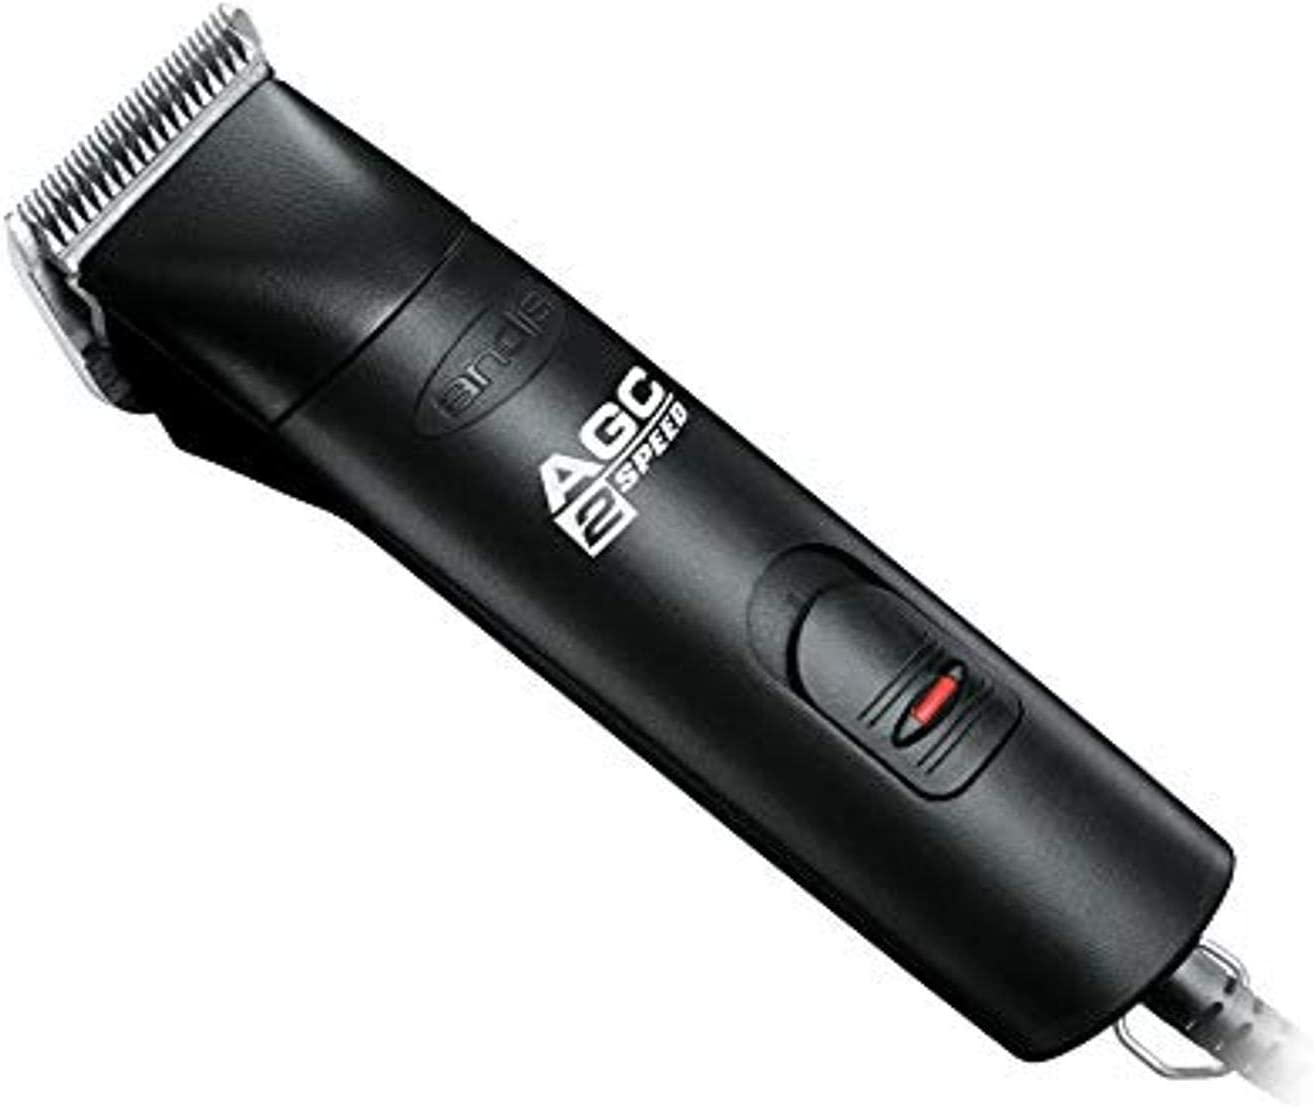 Andis 22340 ProClip 2-Speed Detachable Blade Clipper, Professional Animal Grooming, AGC2, Black